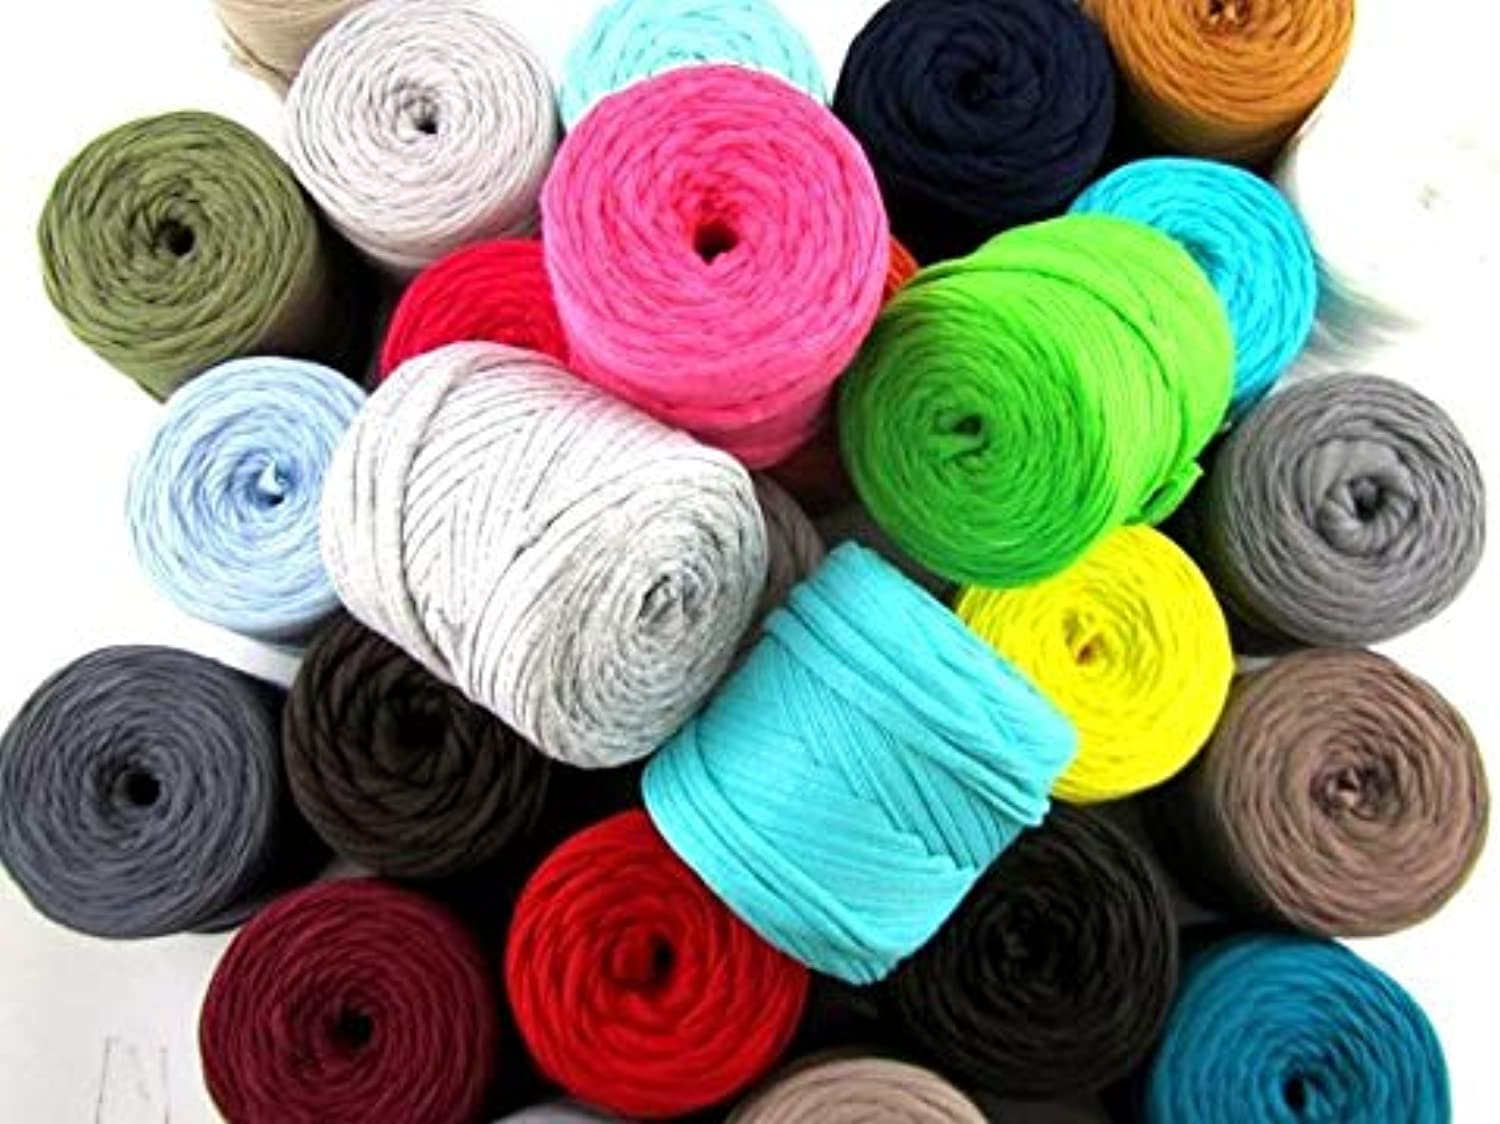 Hoooked Zpagetti Mixed Solid Cotton TShirt Yarn Baby Cones  20m (65.6'), 100g, Pack of 30